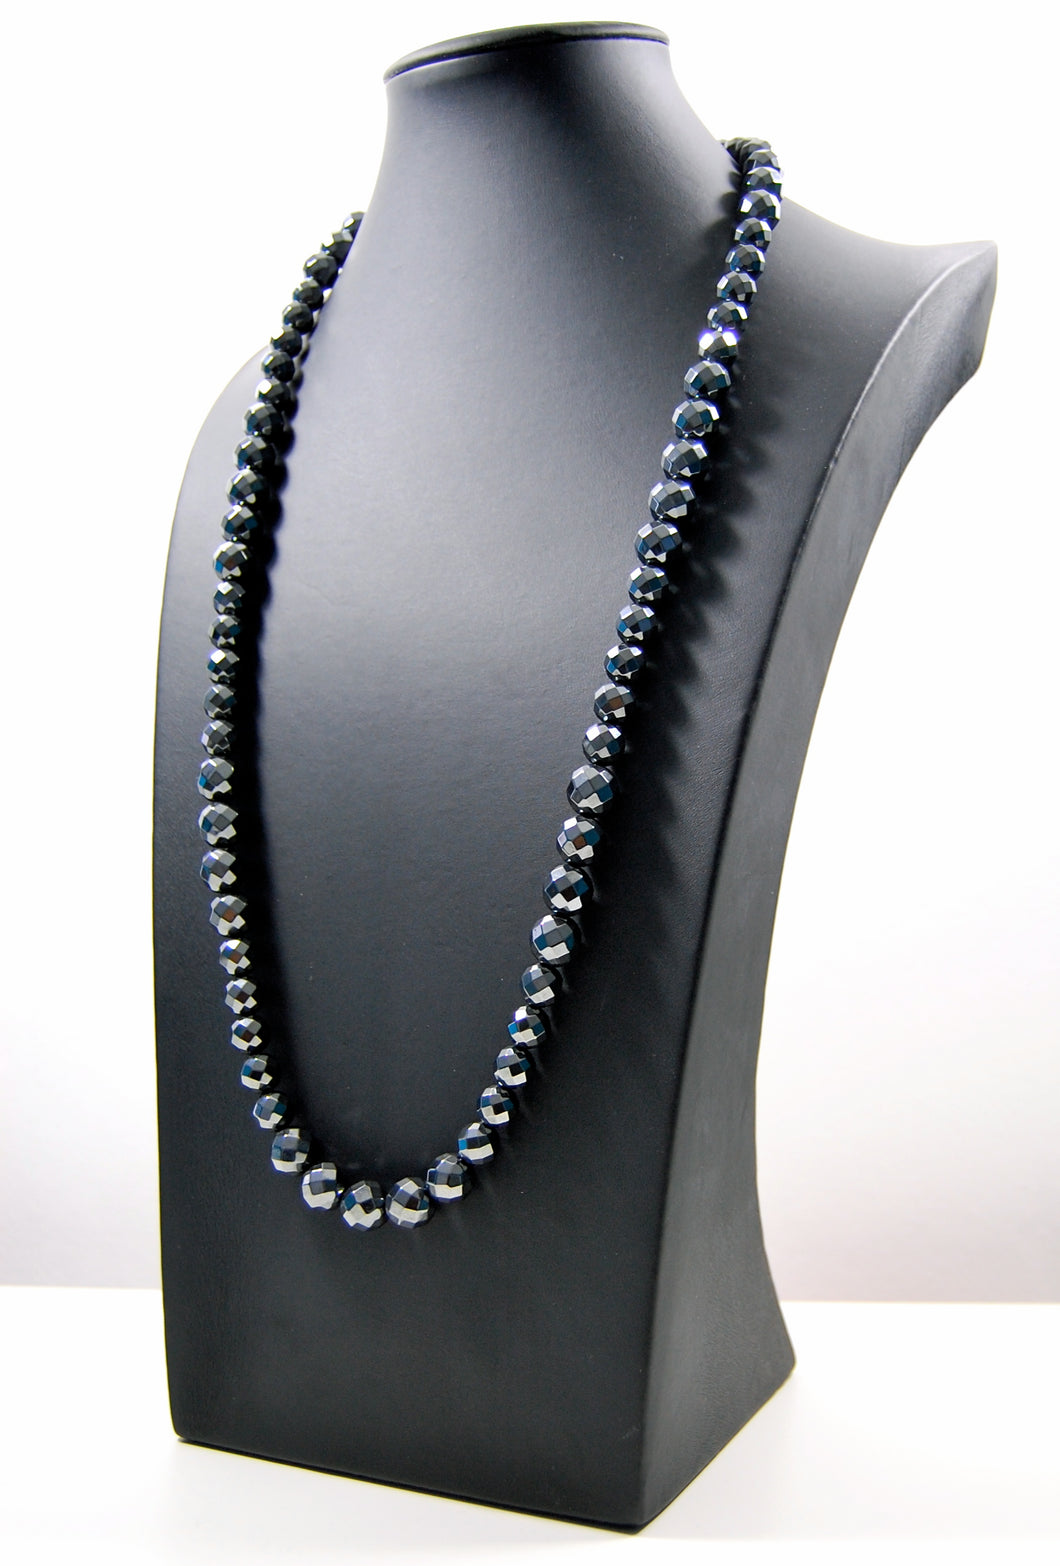 Stushlery Men's Faceted Hematite Necklace